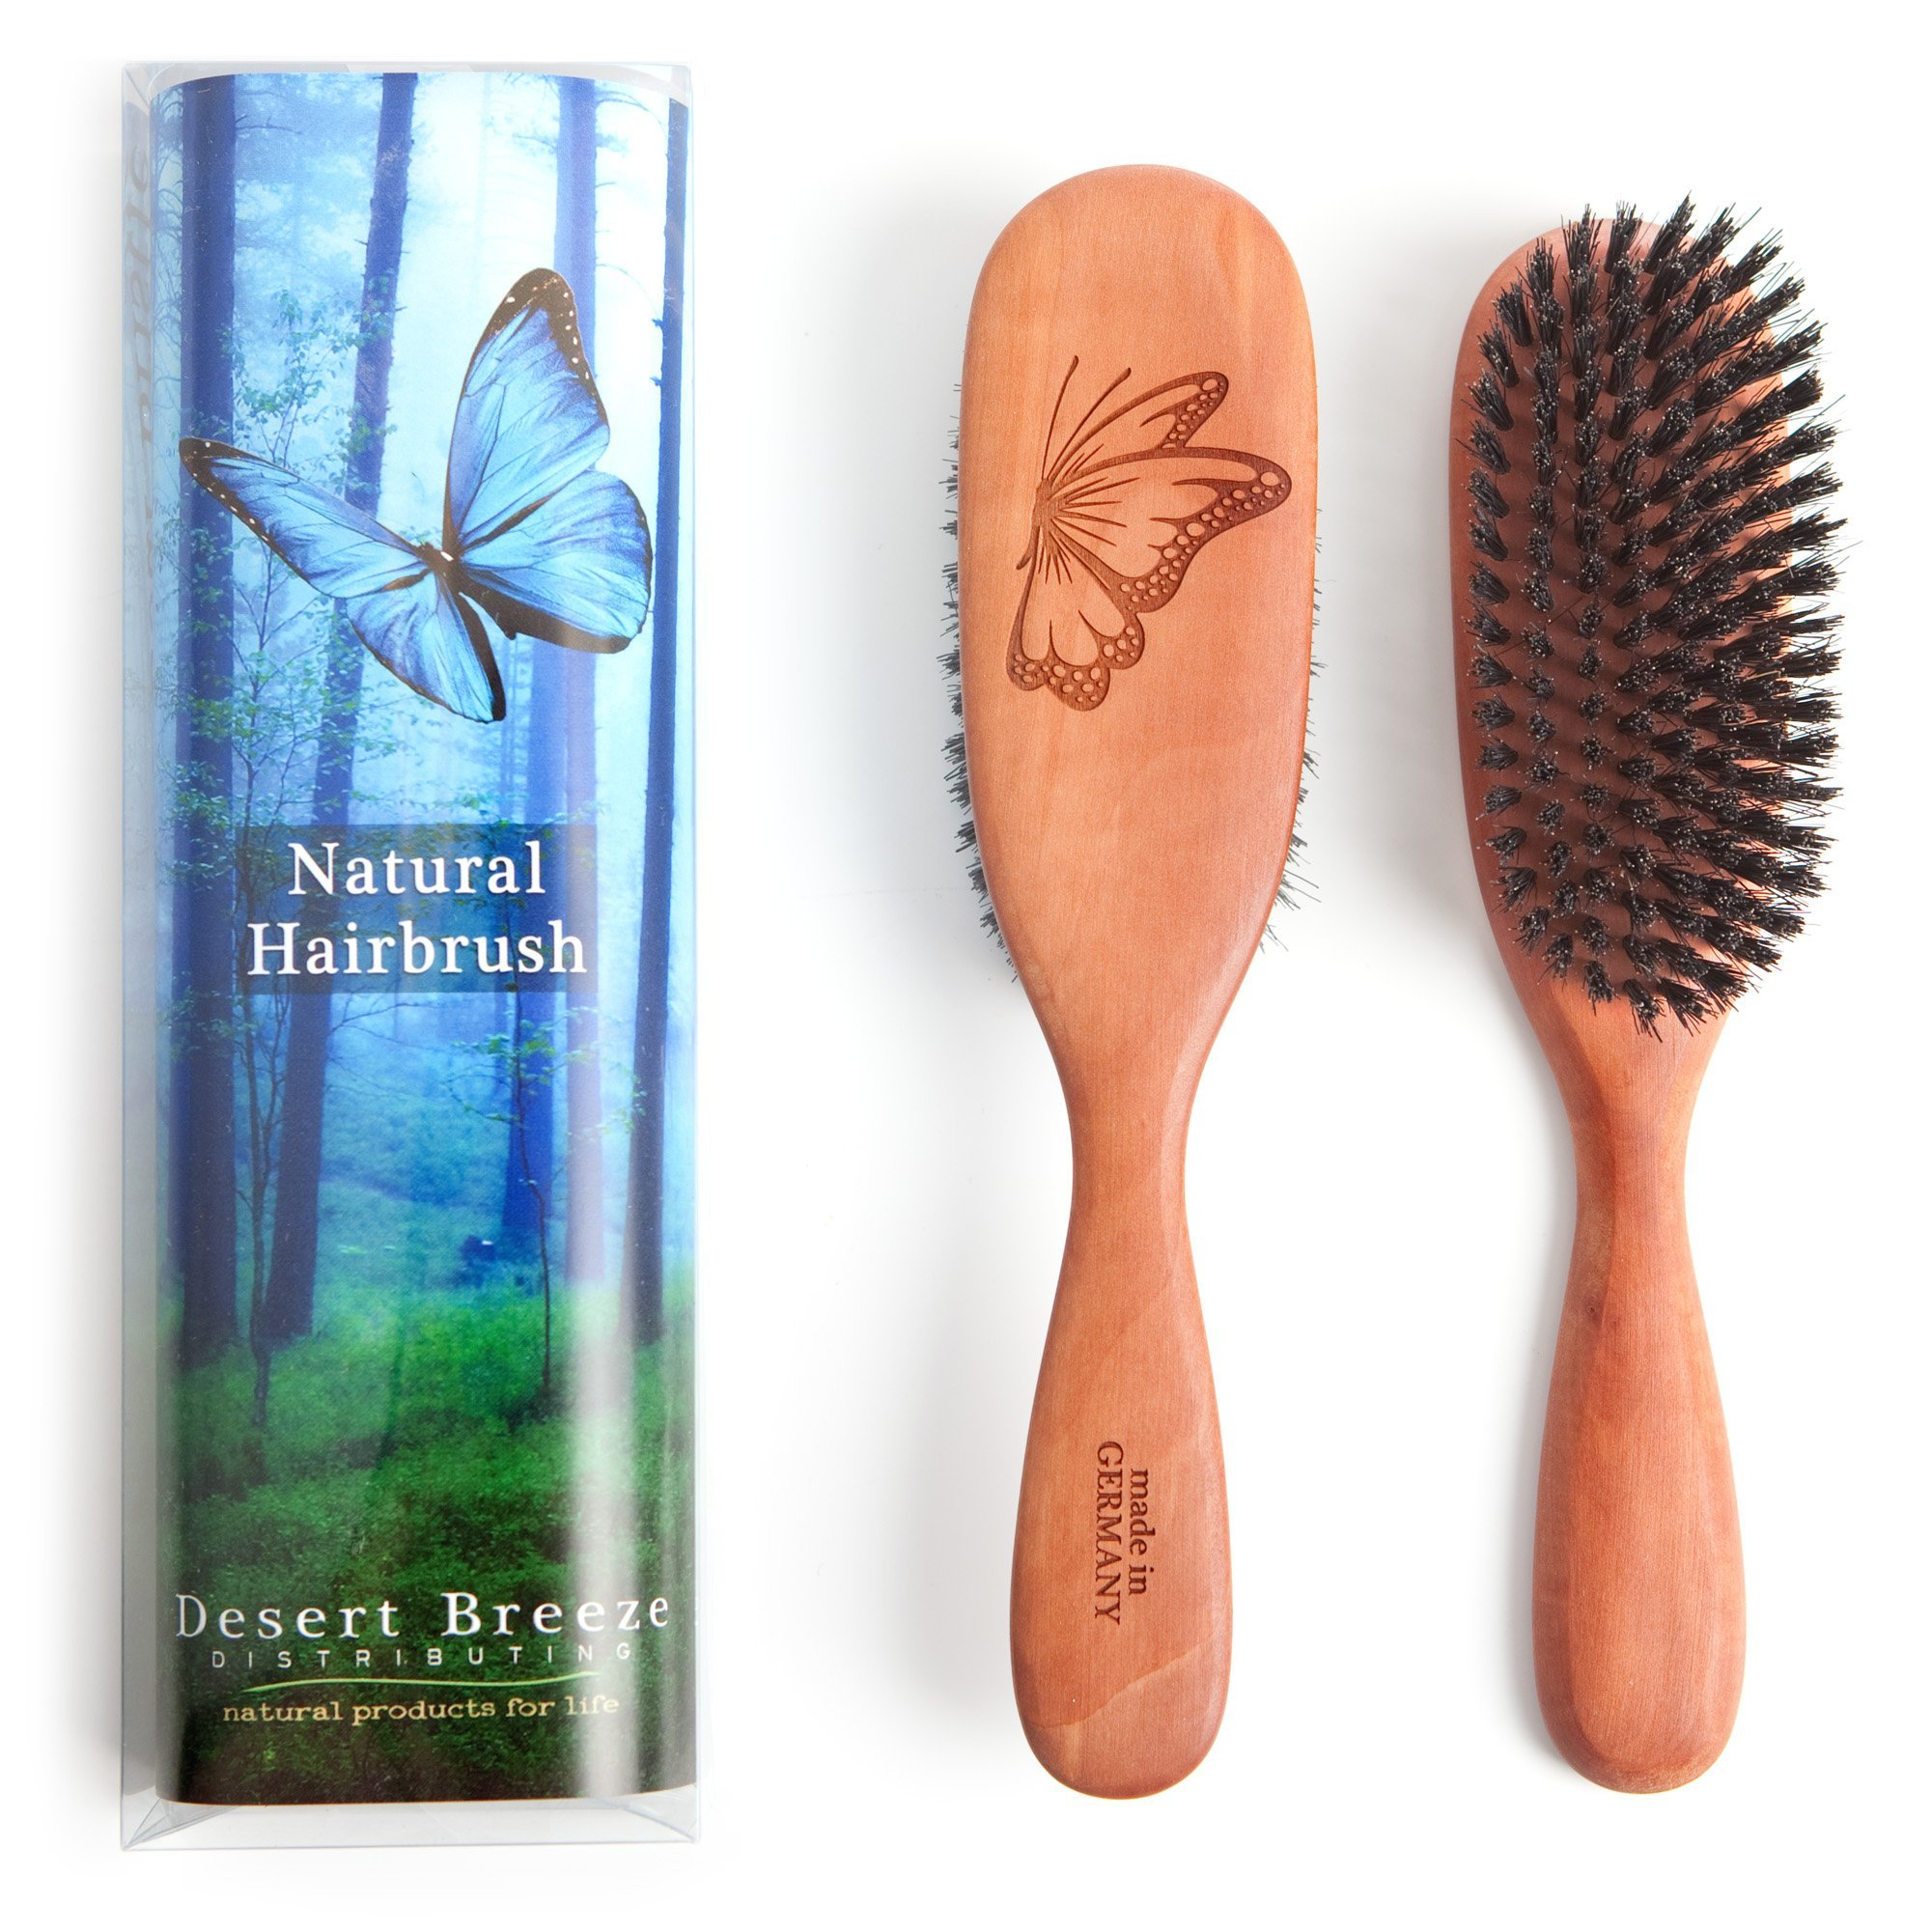 Made in Germany, 100% Pure Wild Boar Bristle Hair Brush, Model PW1, 1st Cut Natural Bristles, Best for Thin Hair, Pear Wood Handle, Premium Hairbrush, by Desert Breeze Distributing by Desert Breeze Distributing